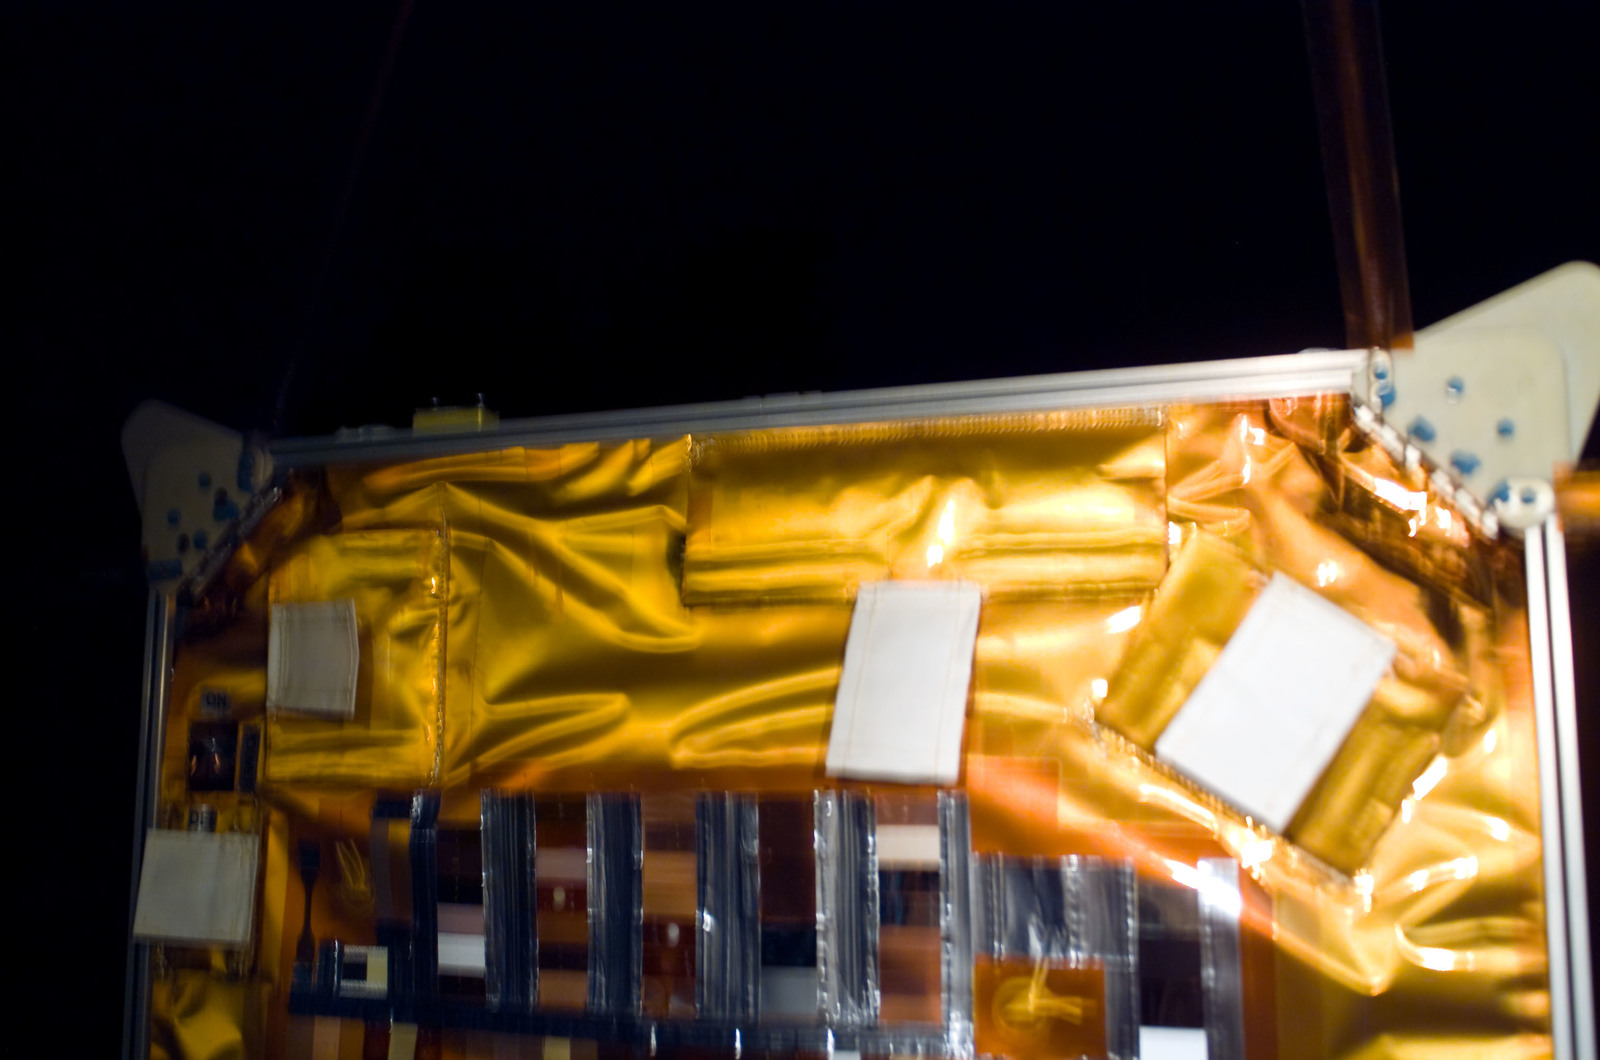 S115E06395 - STS-115 - Second set of solar arrays on the ISS during Expedition 13 / STS-115 Joint Operations